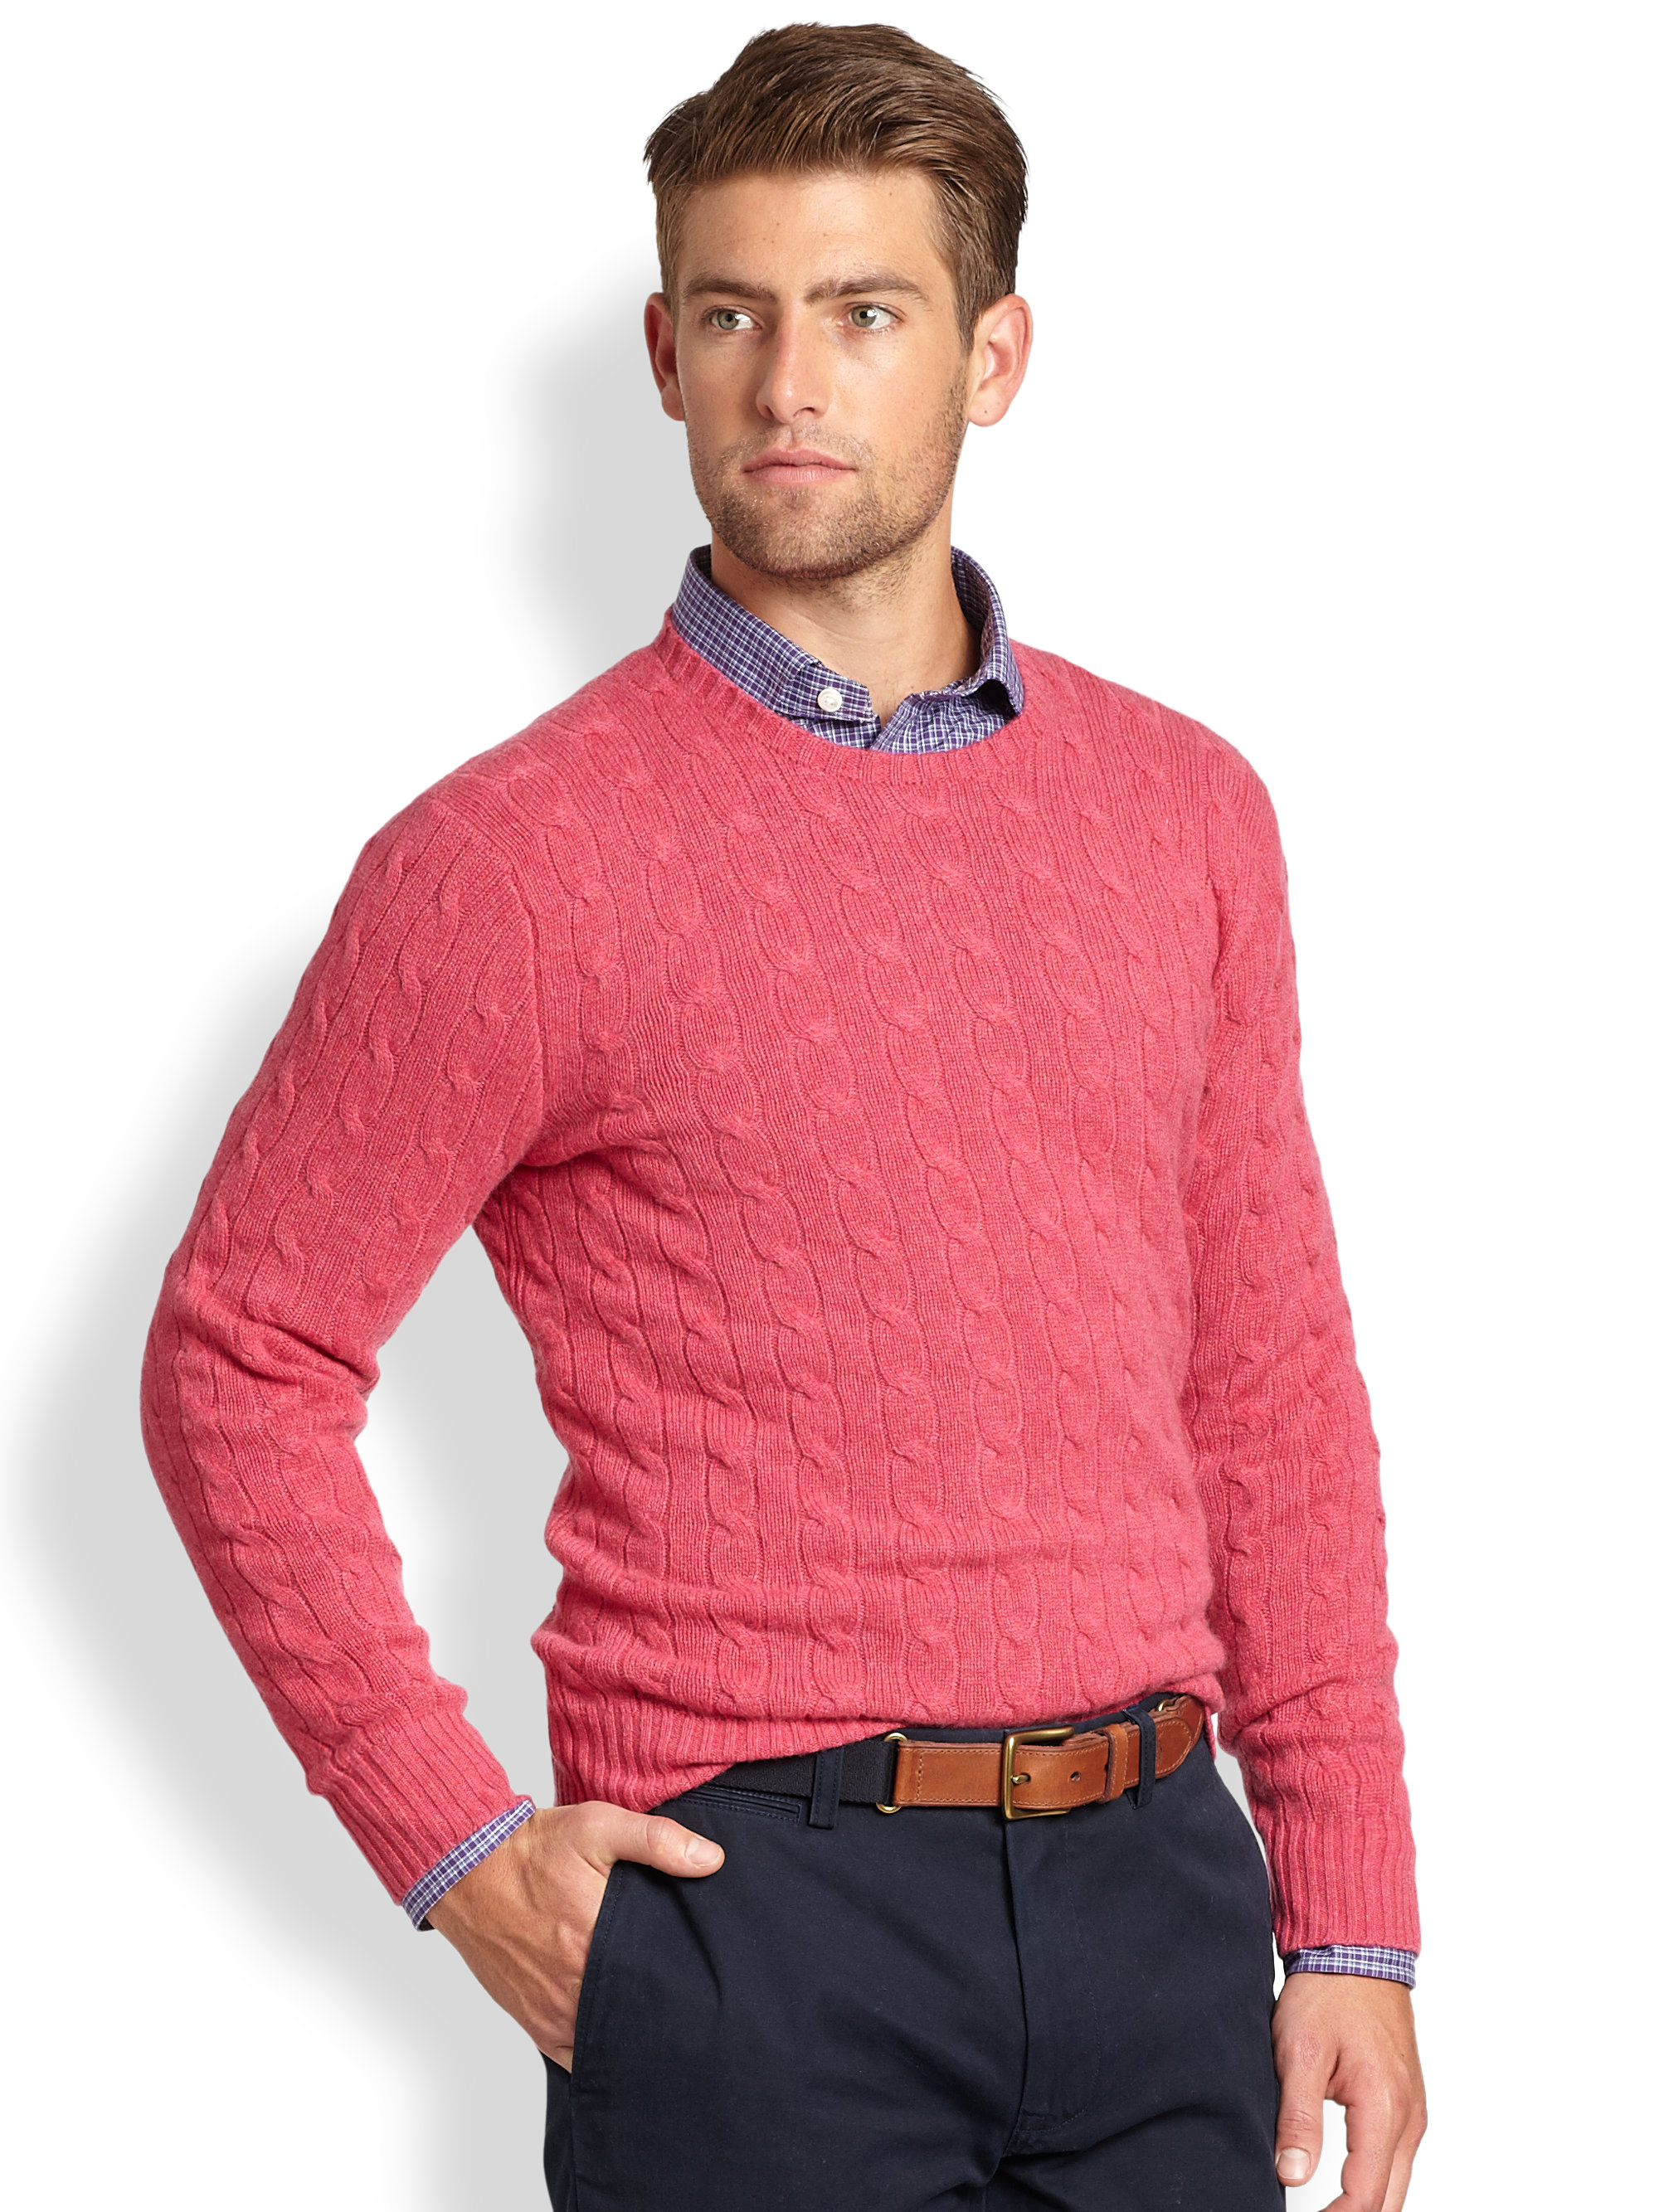 cf511caaa54 Polo Ralph Lauren Red Cable Knit Cashmere Crewneck Sweater for men